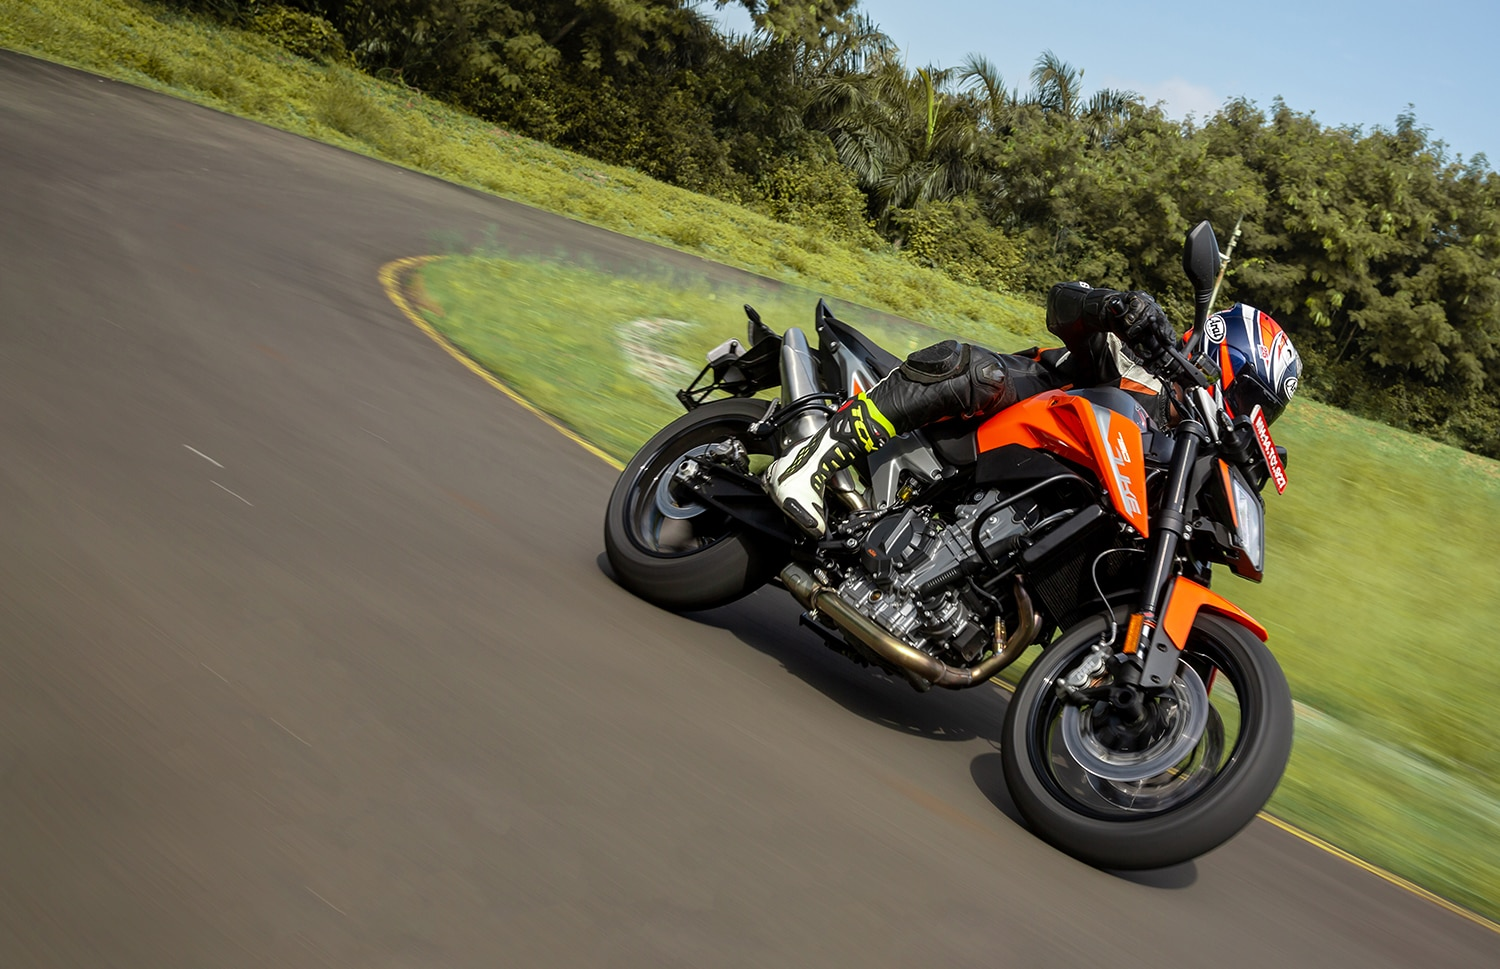 2019 KTM 790 Duke: First Ride Review